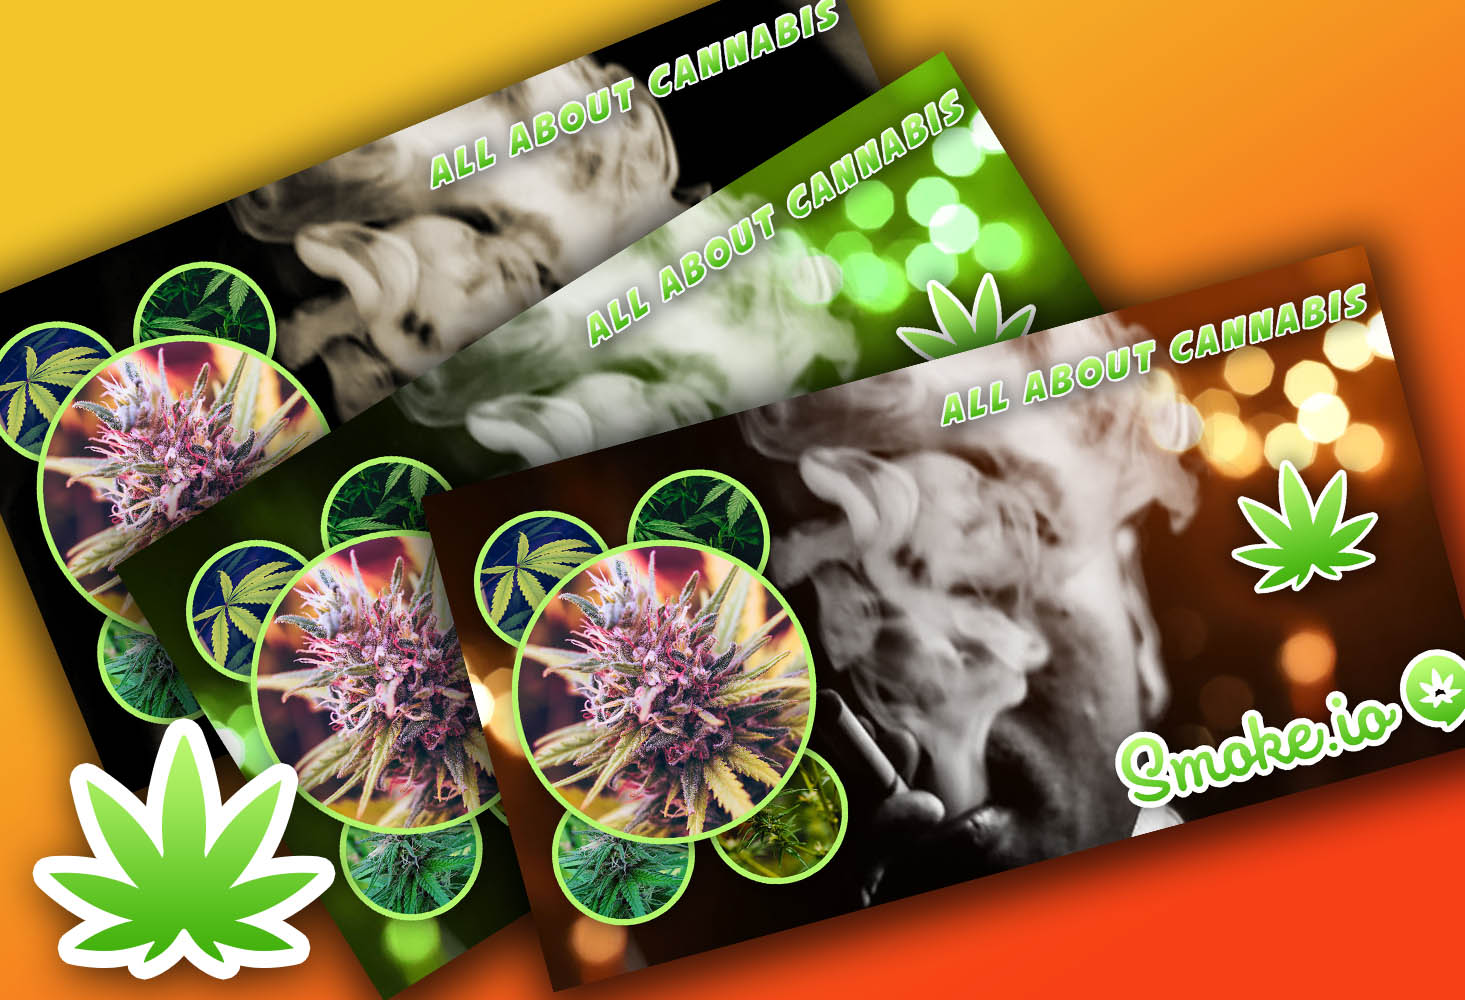 Designs For Smoke Promotion #128 - Digital Artboards